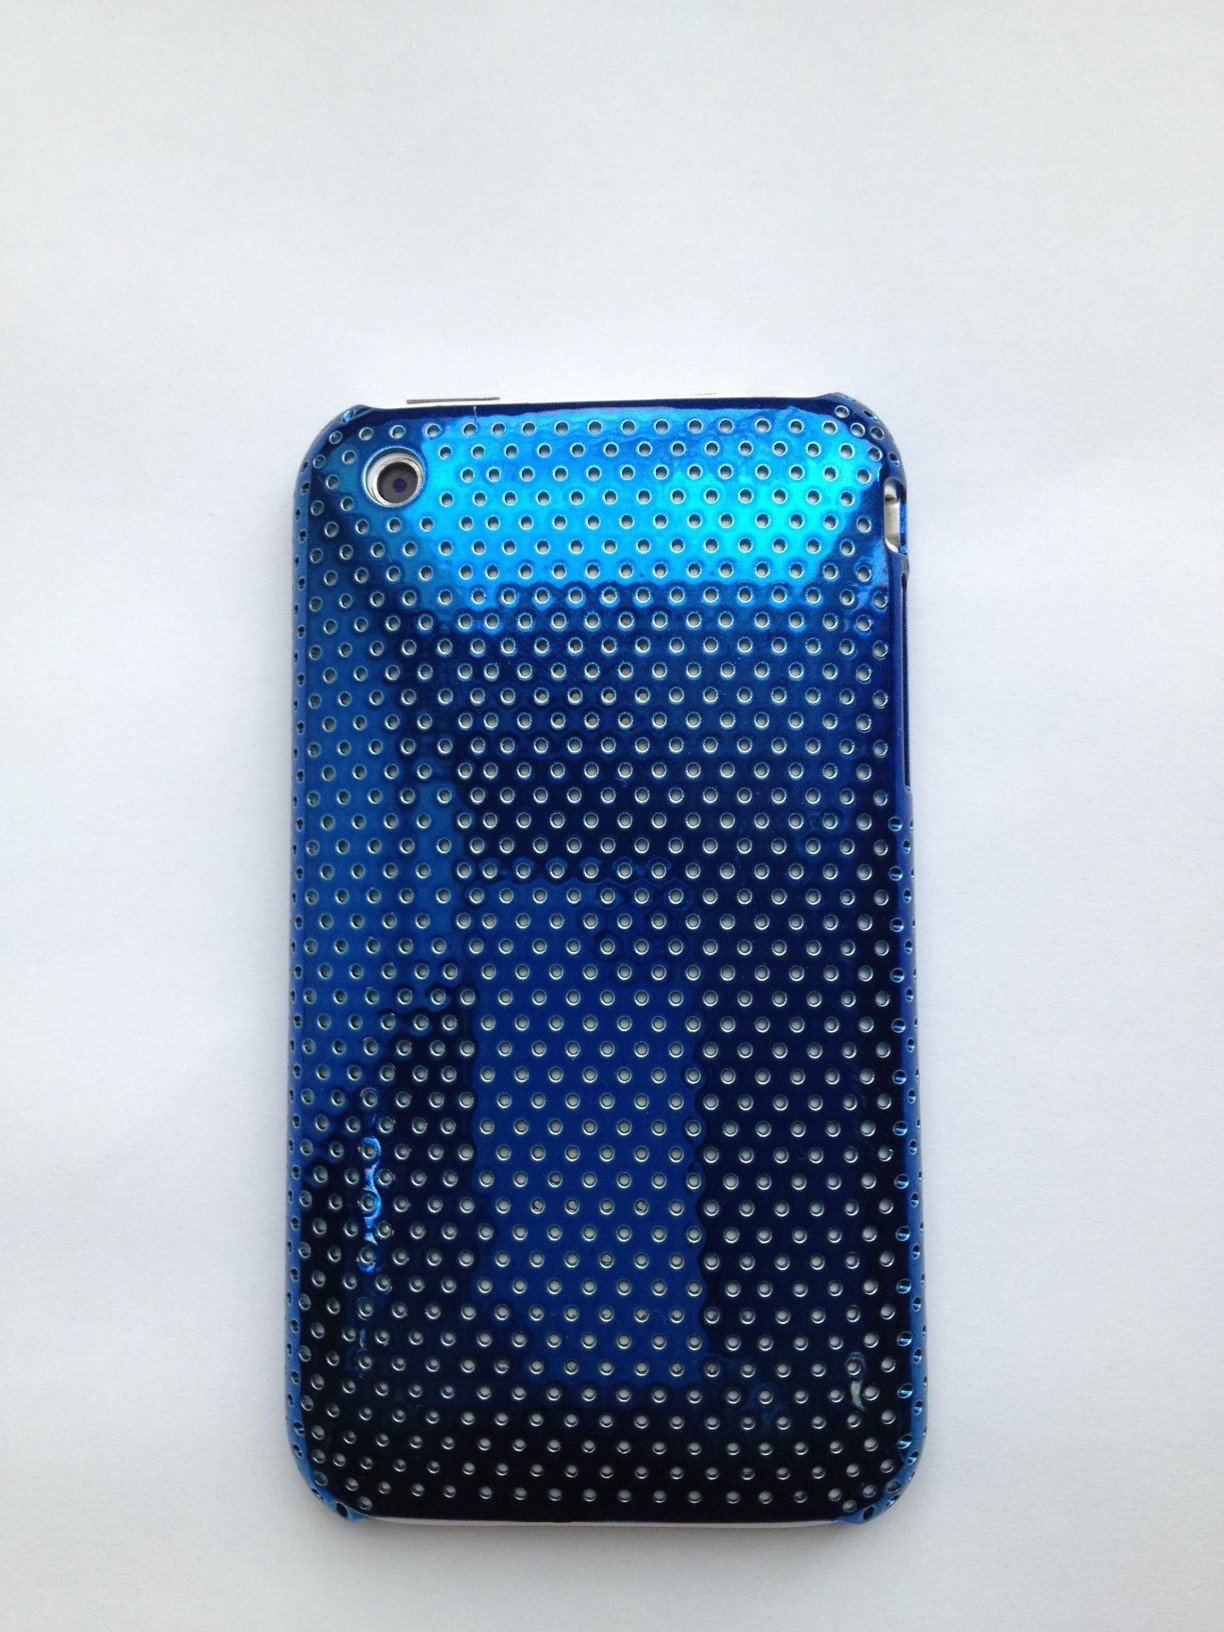 coque iphone 3g lookmyphone - Test : Coque Ventilée Bleue iPhone 3G/3GS